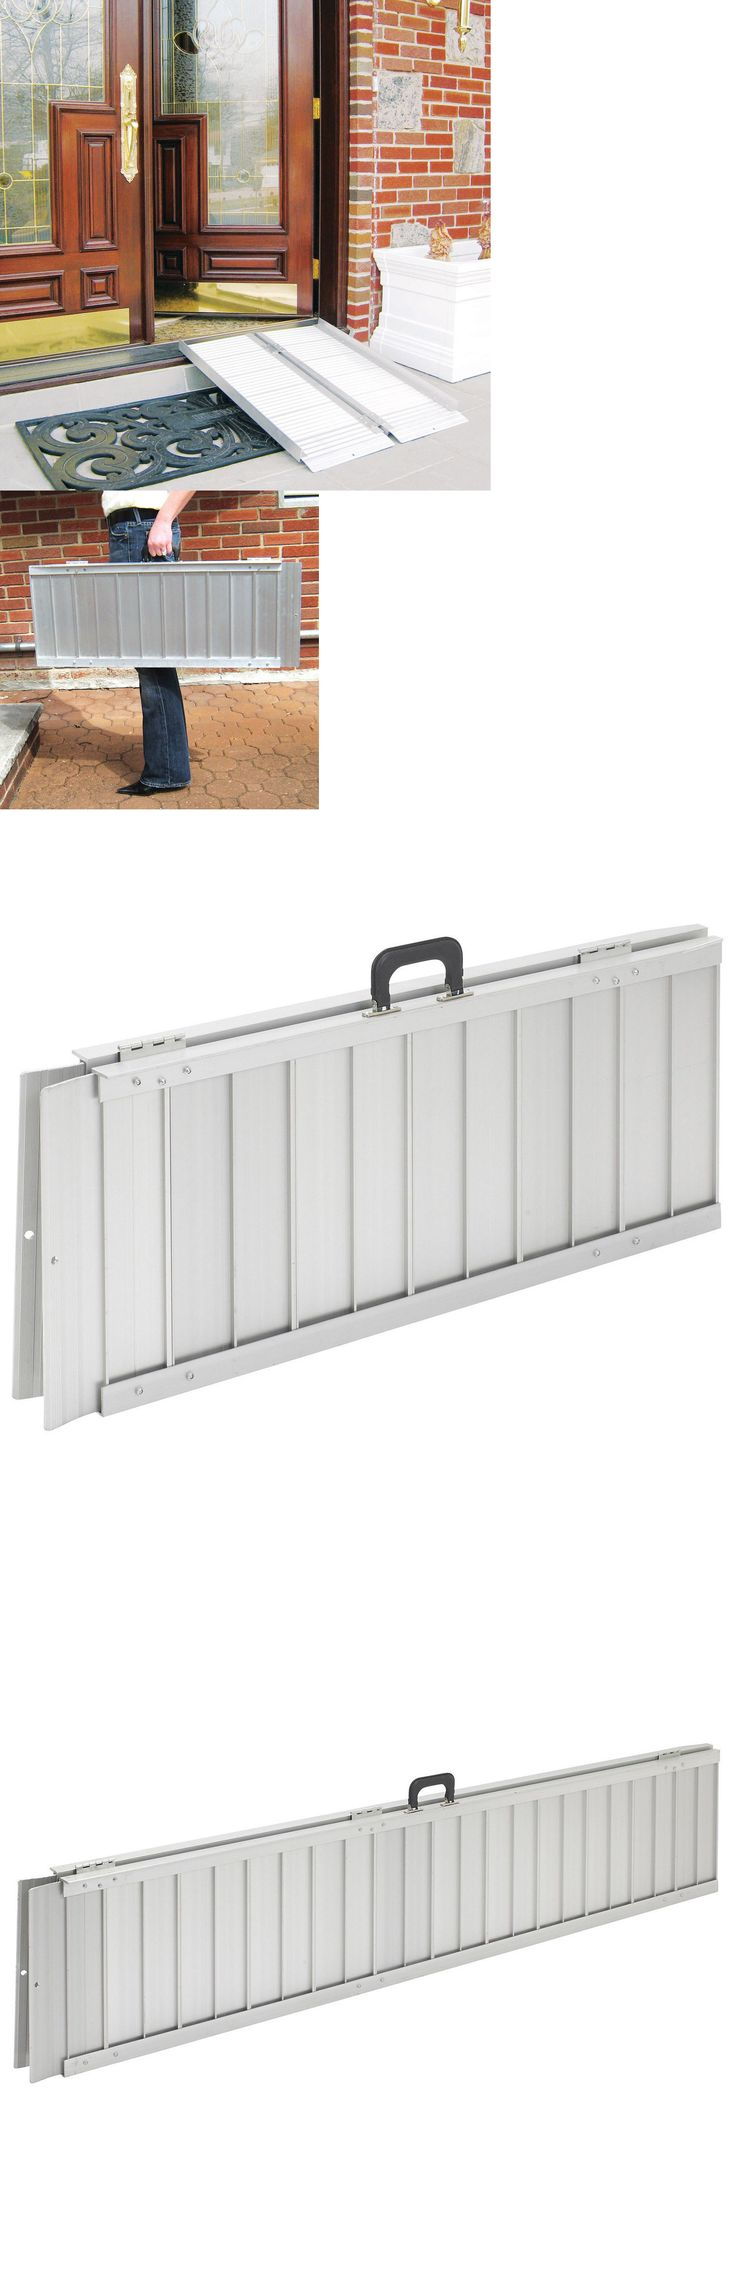 Access Ramps: Wheelchair Ramp Ramps Scooter Portable Folding Lightweight Threshold Door Entry -> BUY IT NOW ONLY: $182.02 on eBay!